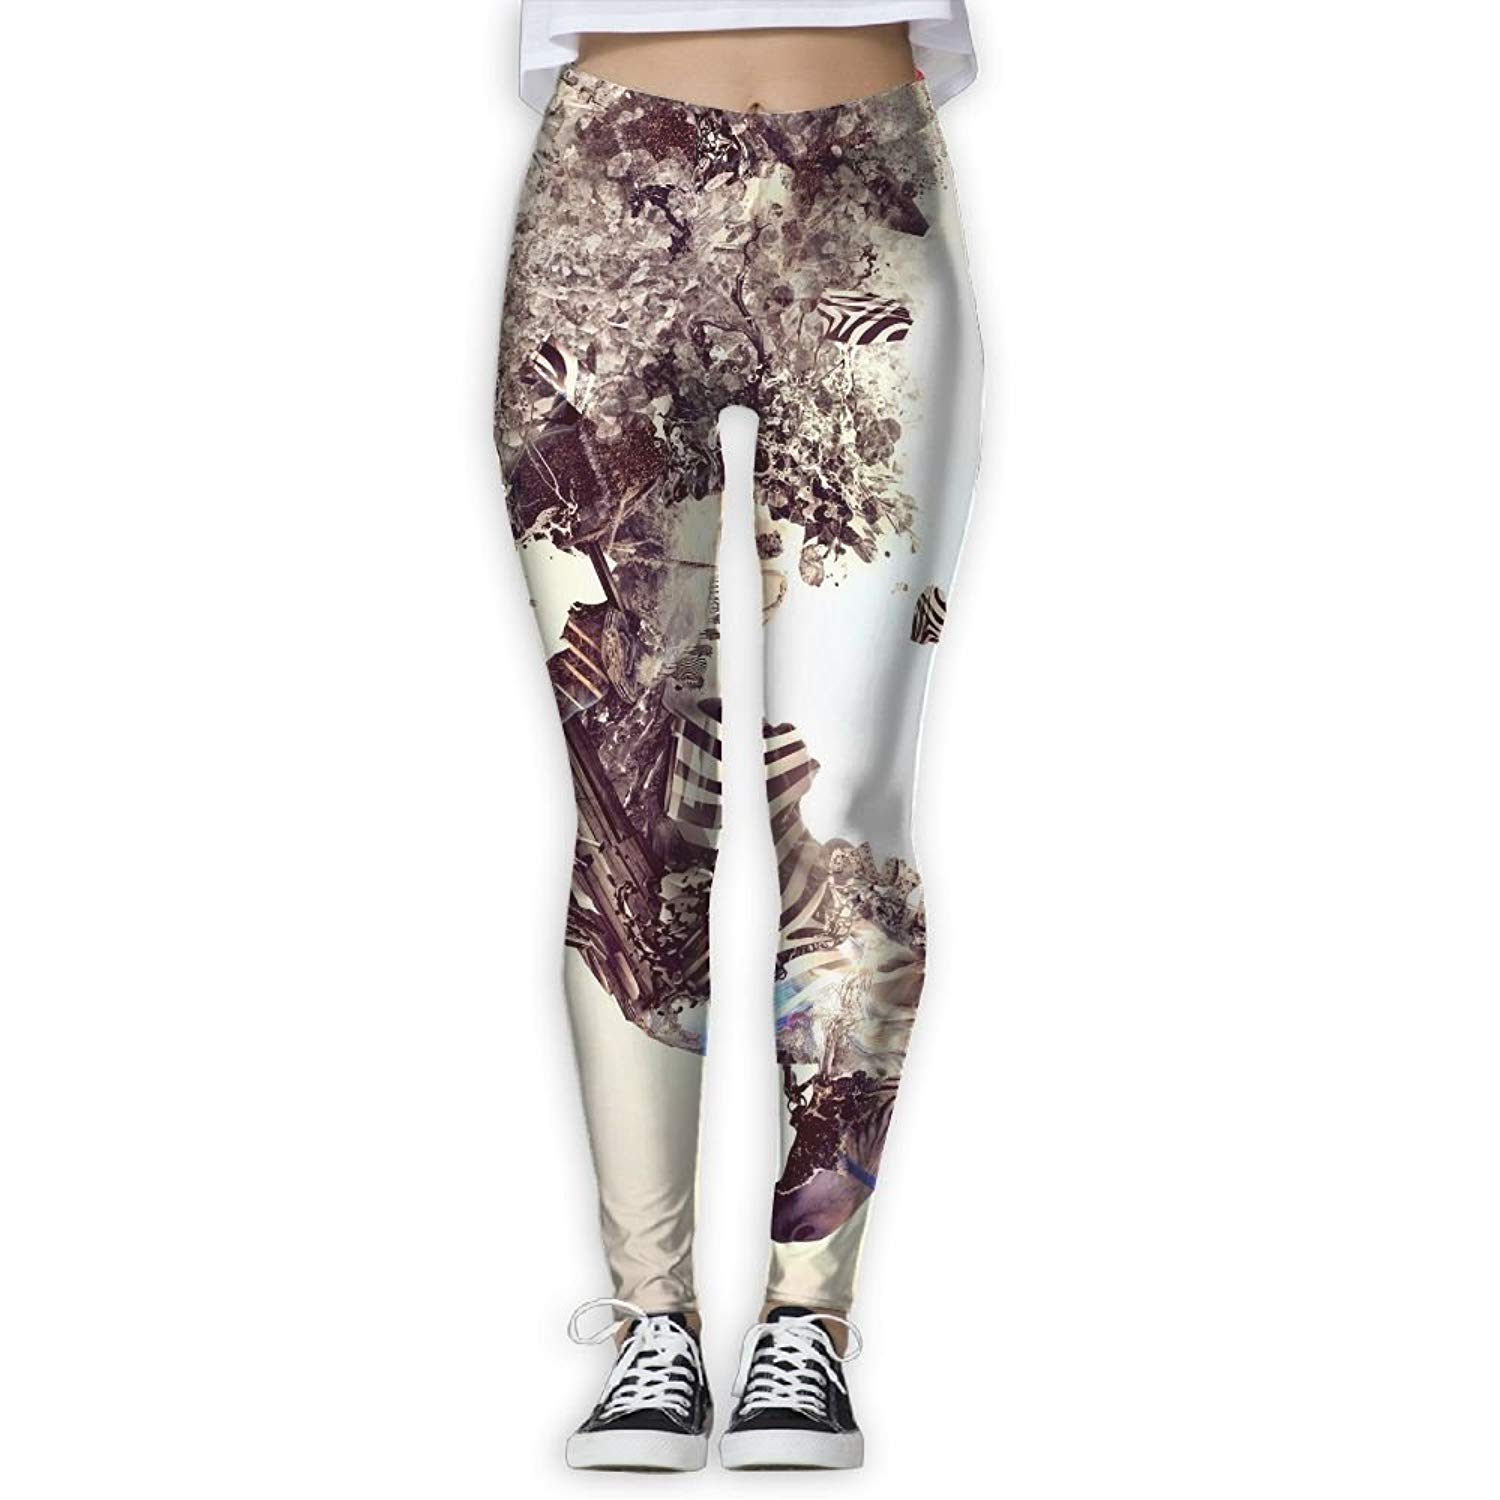 EWDVqqq Women Yoga Pant Artistic Bonsai Explosion Japan Zebra High Waist Fitness Workout Leggings Pants